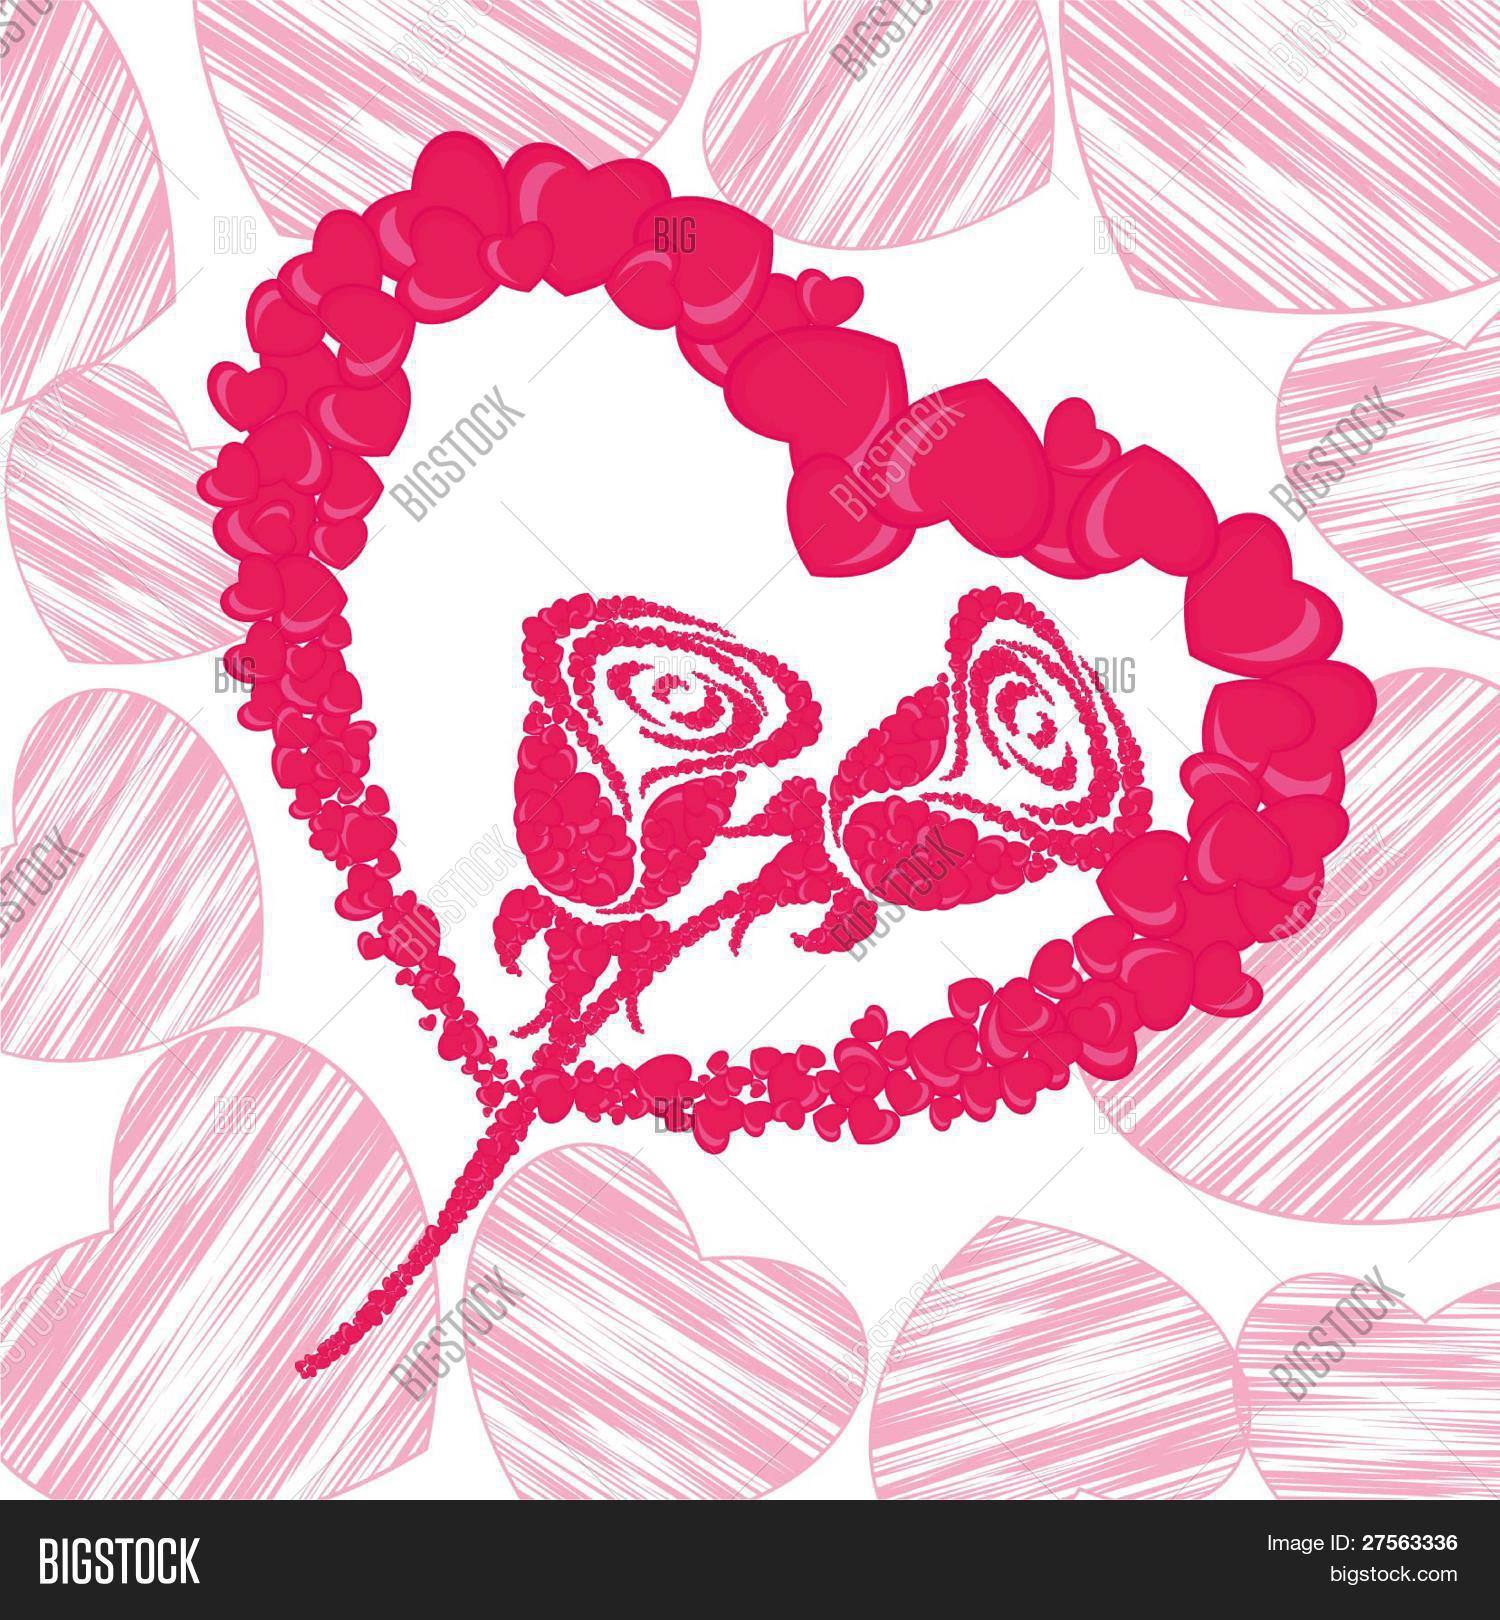 Heart Shape Made With Small Hearts Shapes With Roses In Pink Color Greeting Card For Valentine